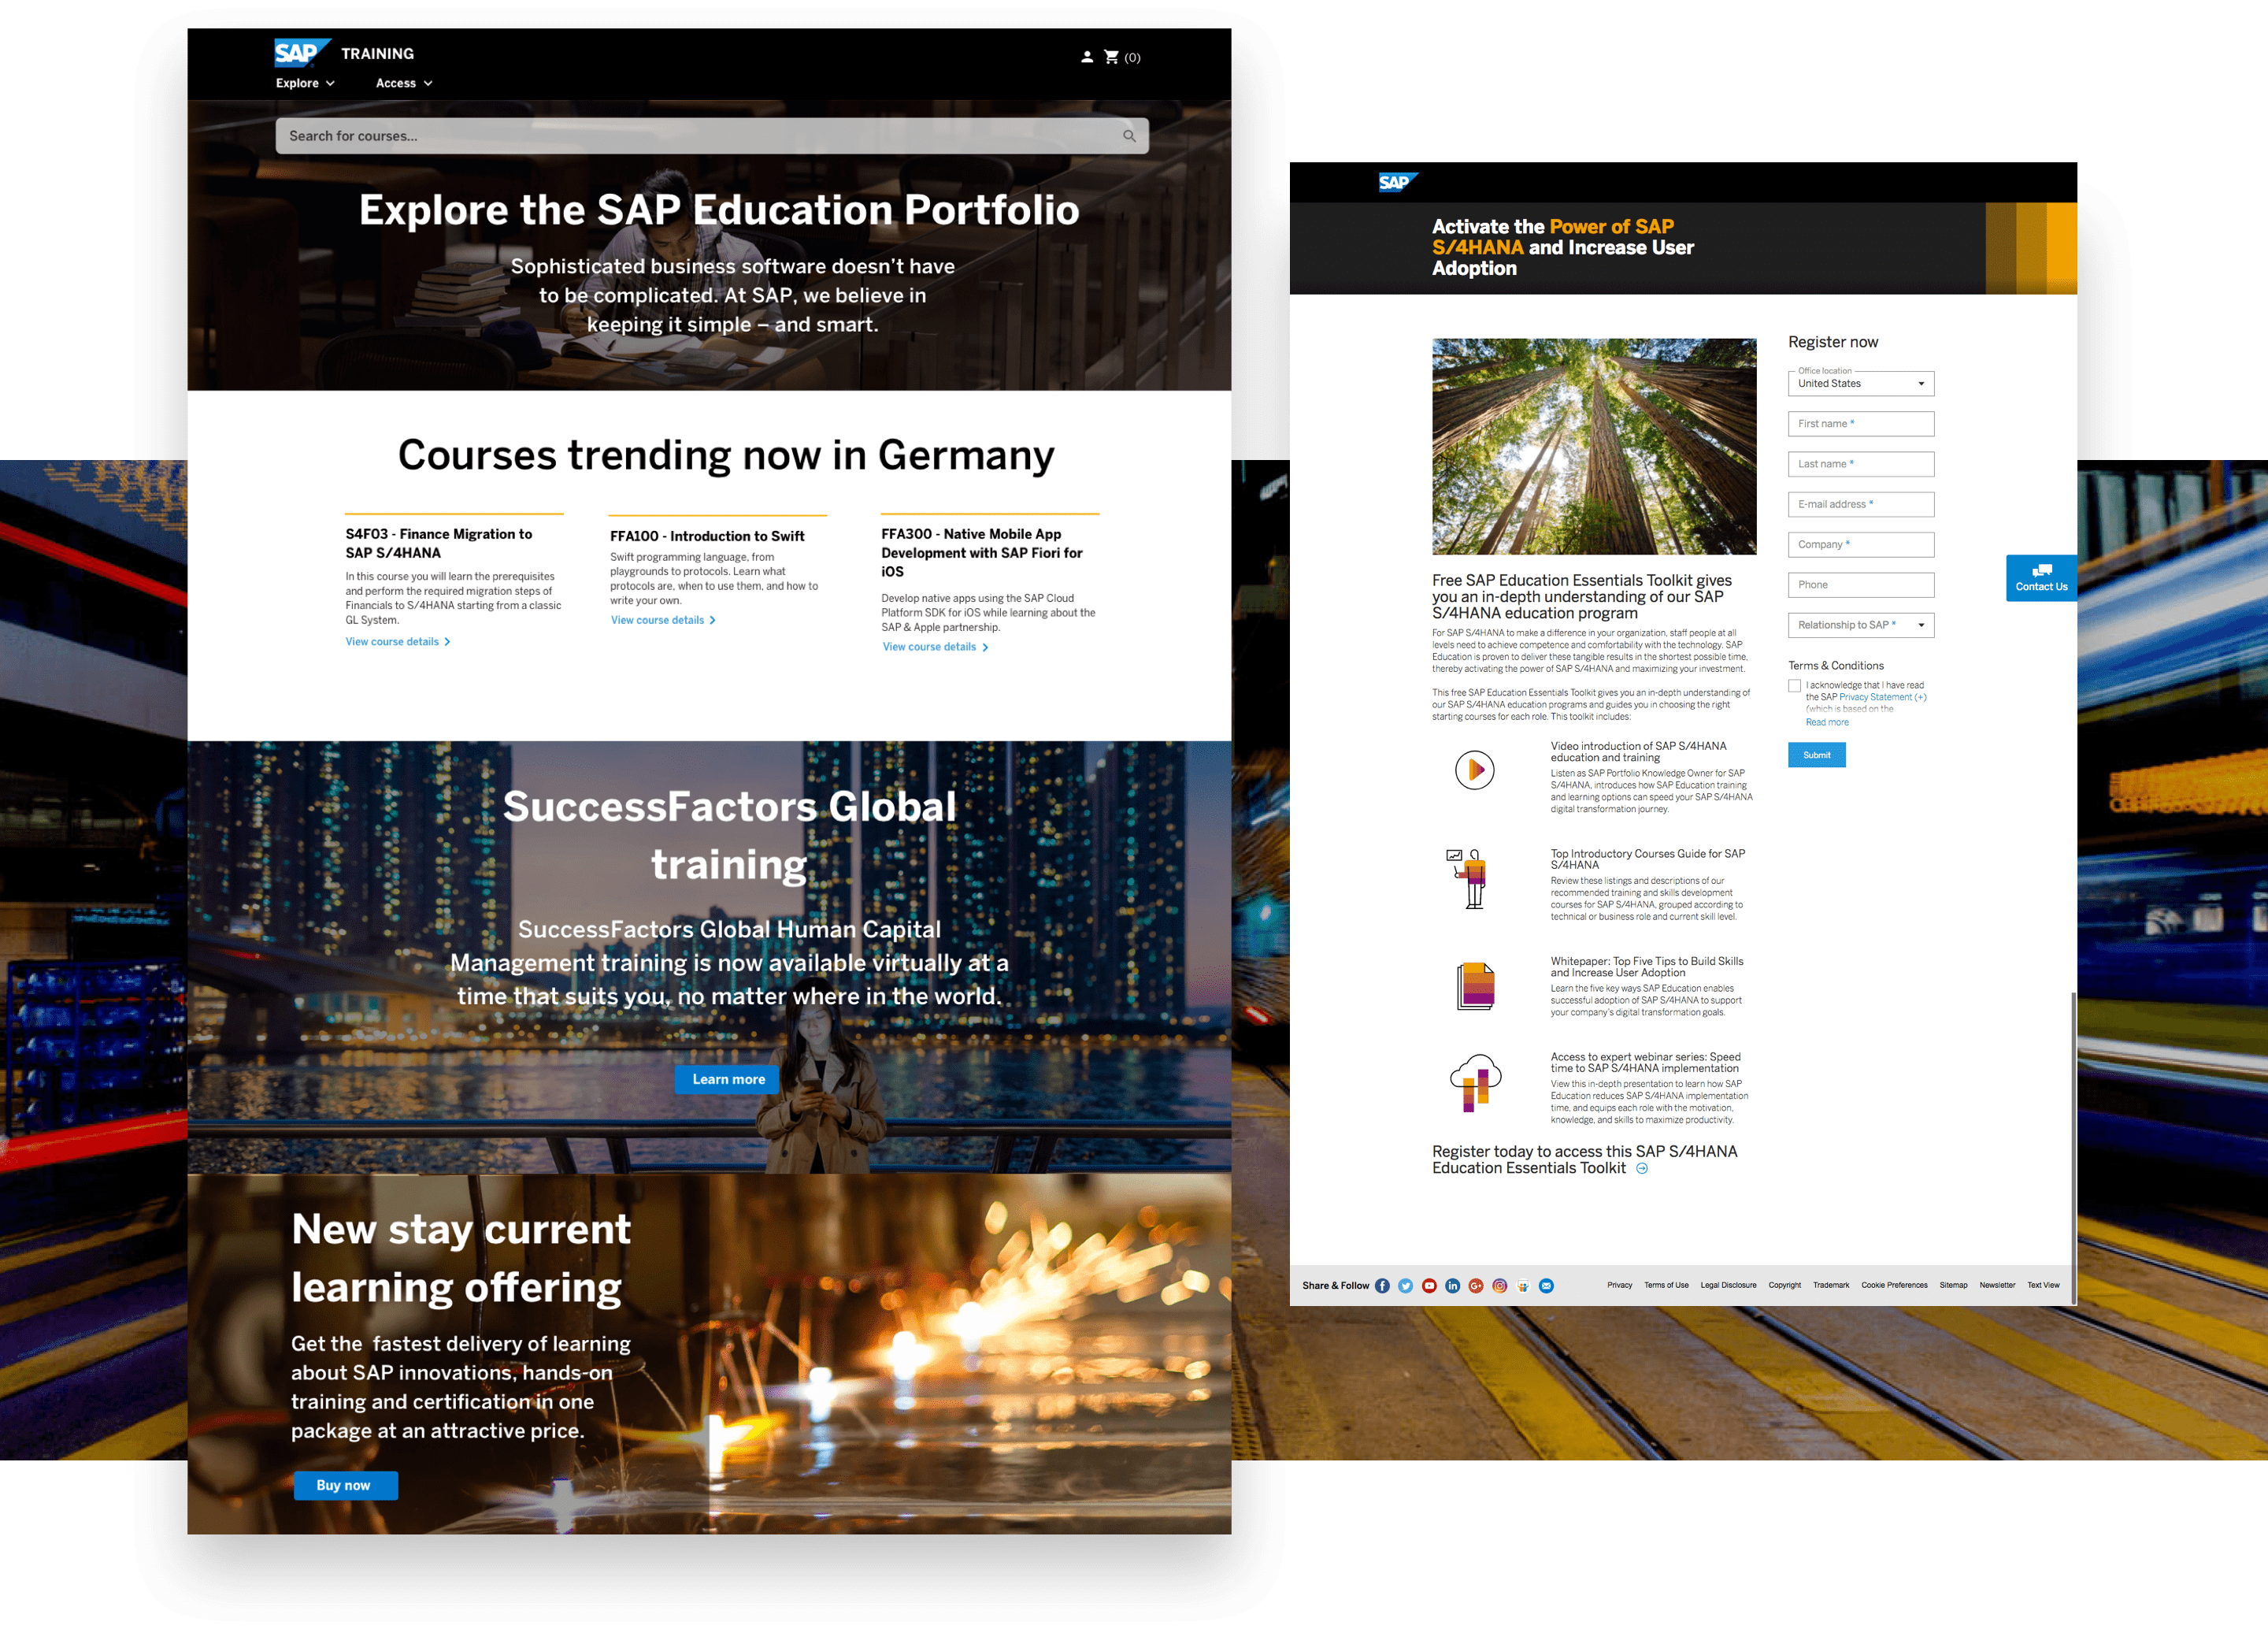 SAP website imagery